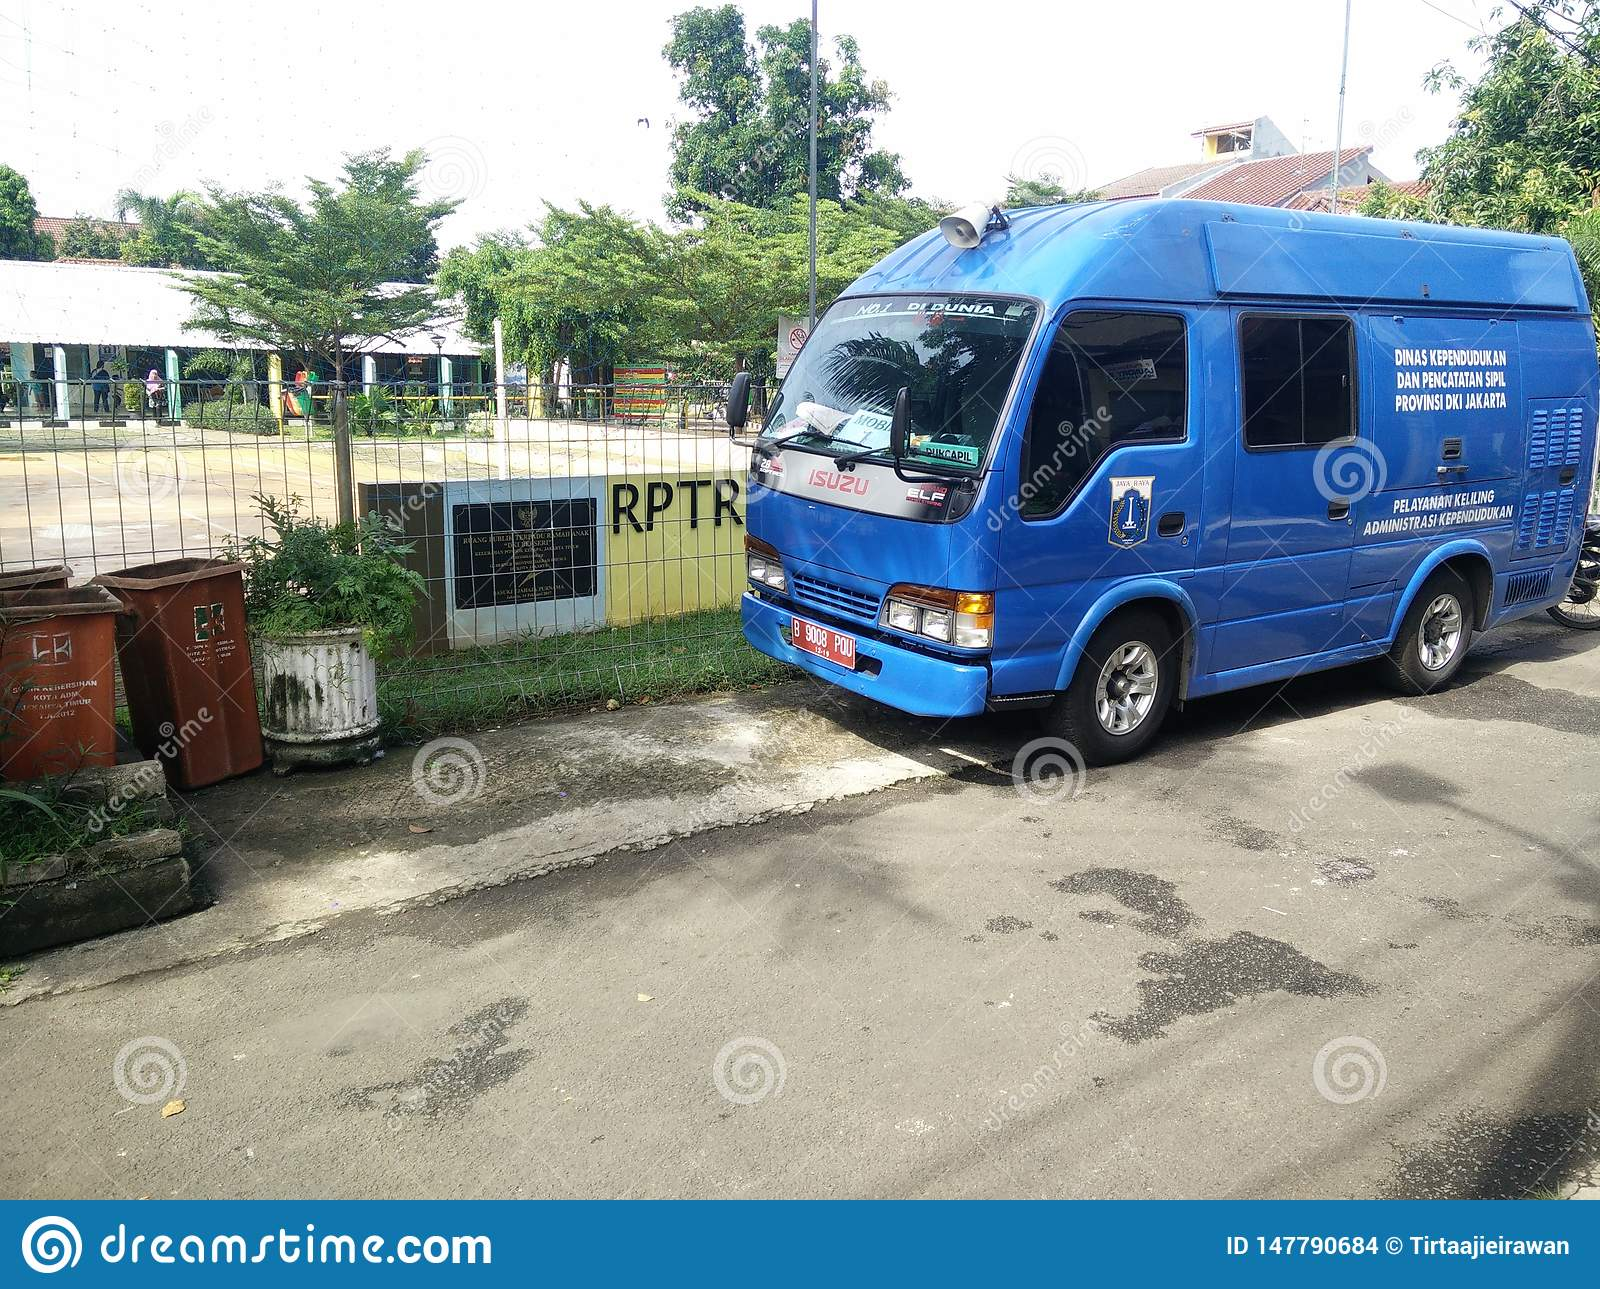 mobile service for making a childs identity card, Jakarta, Indonesia April 2 2019